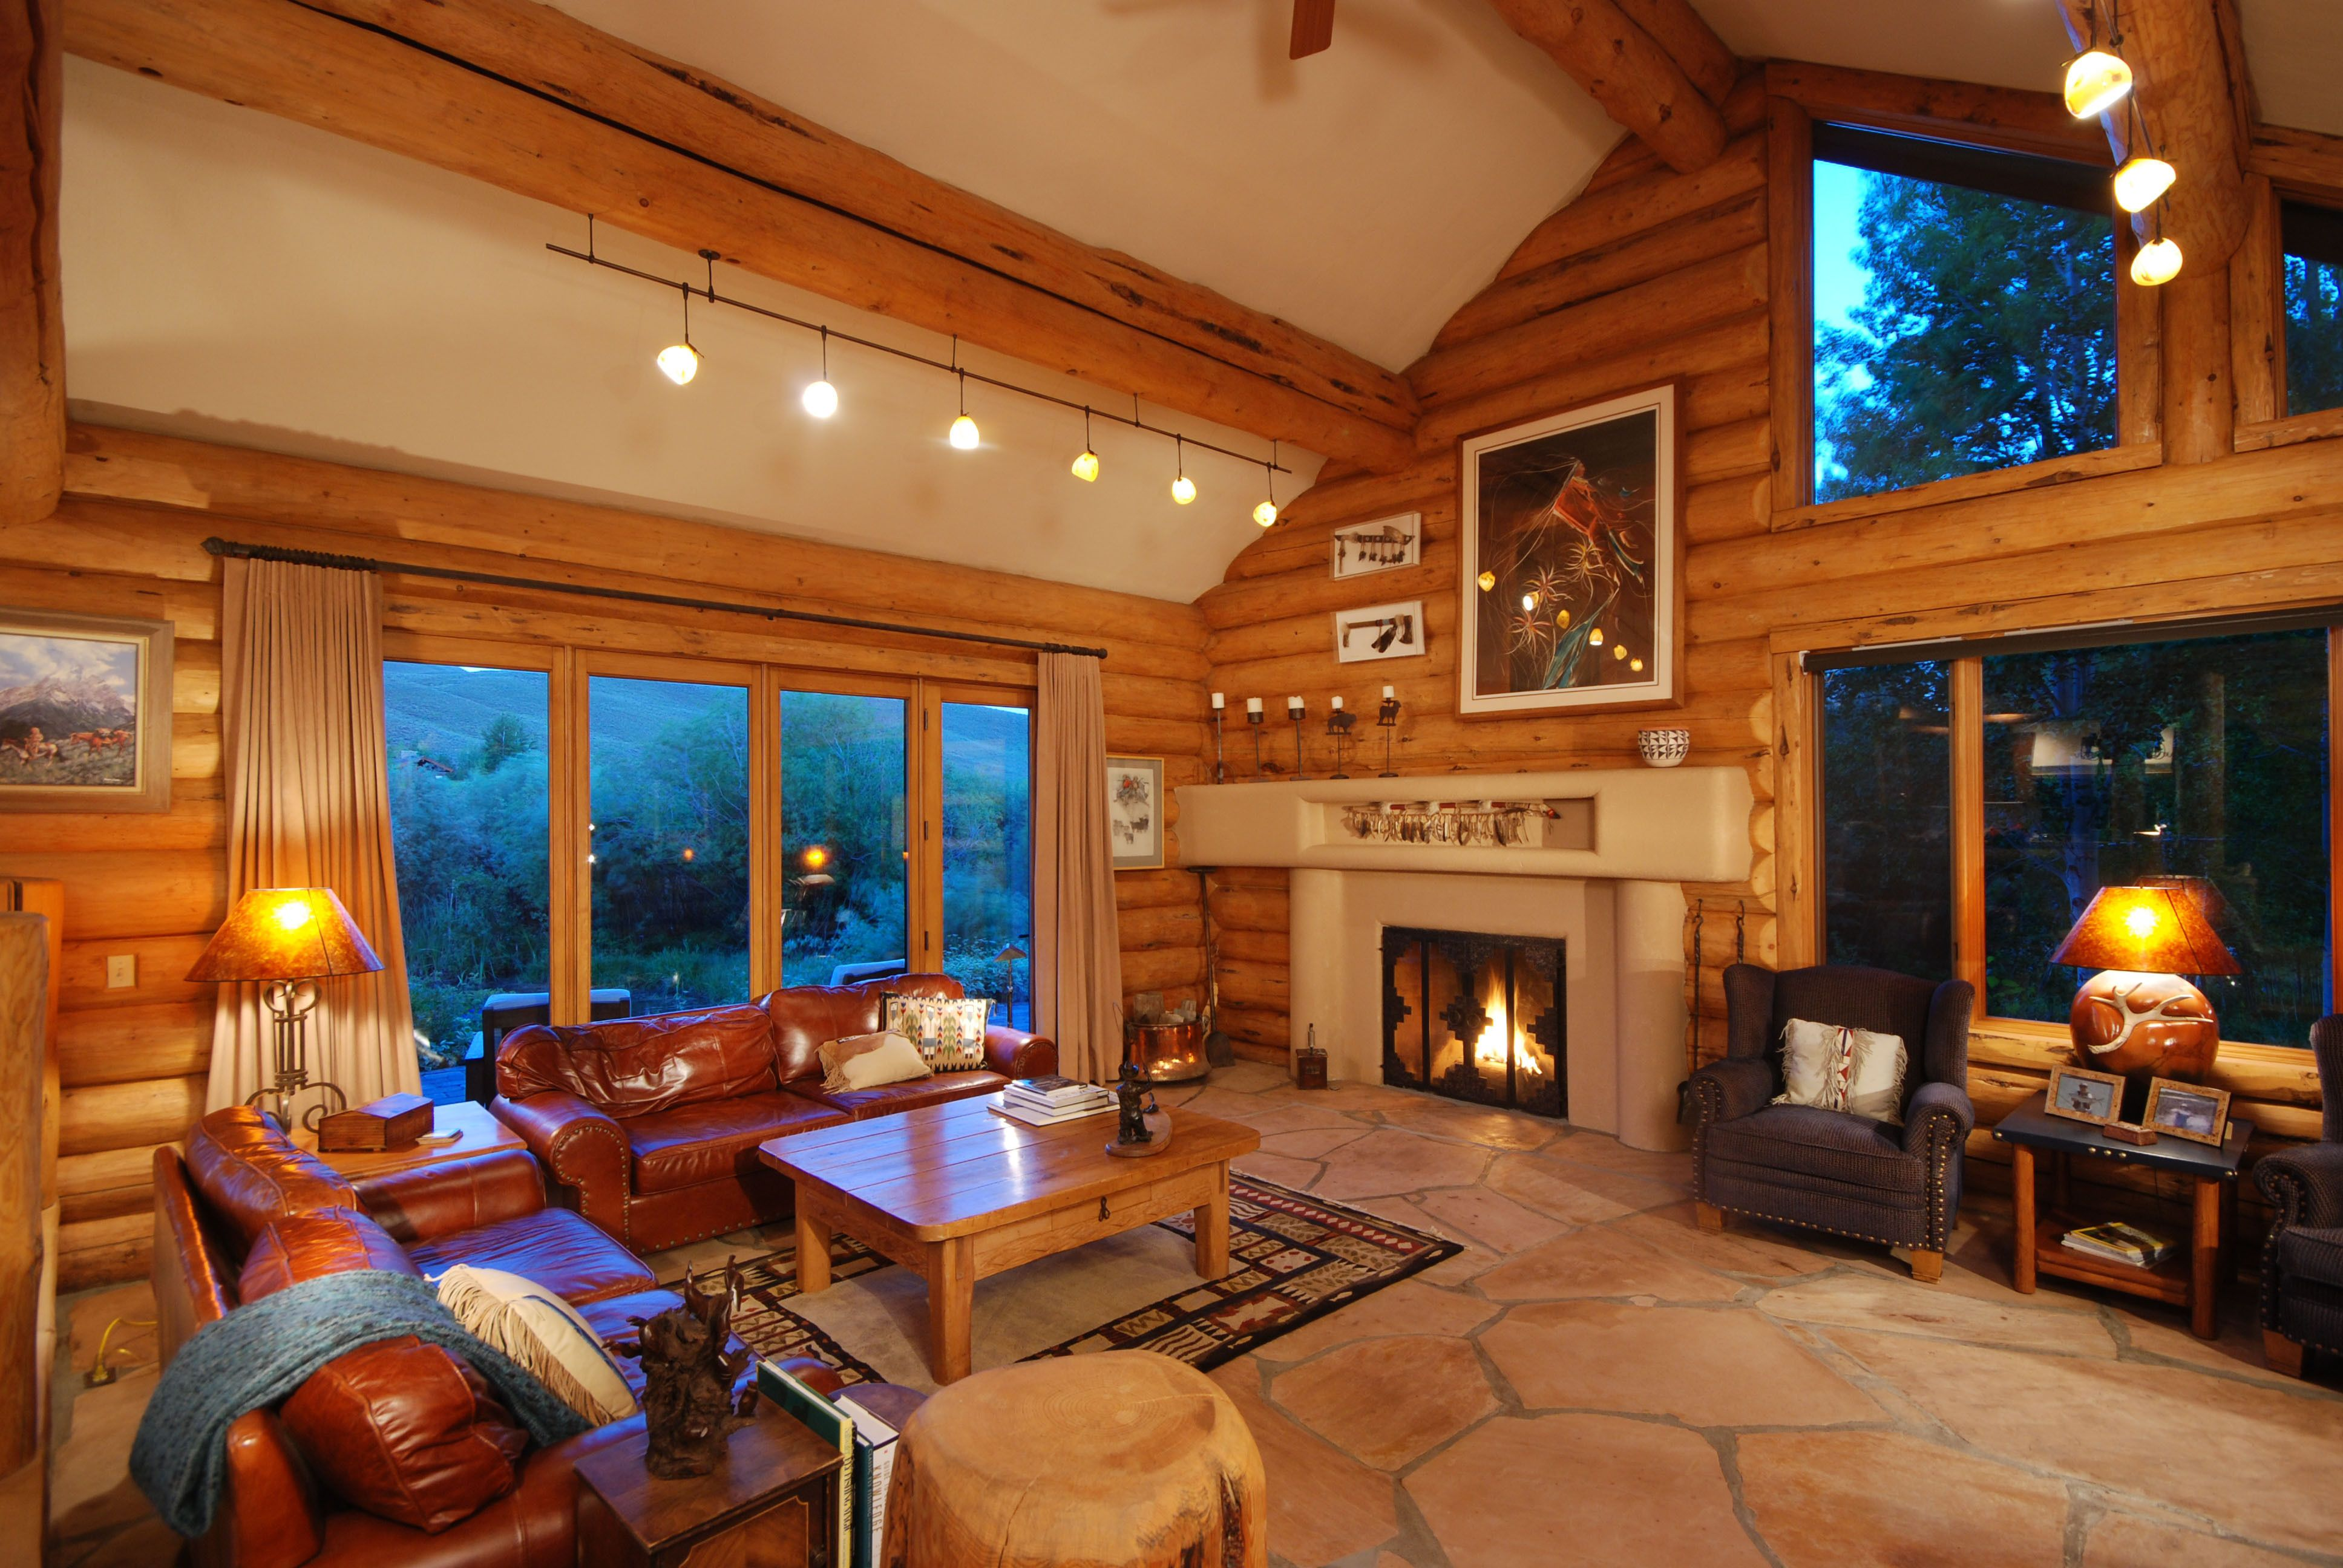 Home In The Mountains mountain homes | interior design of a house in the mountains